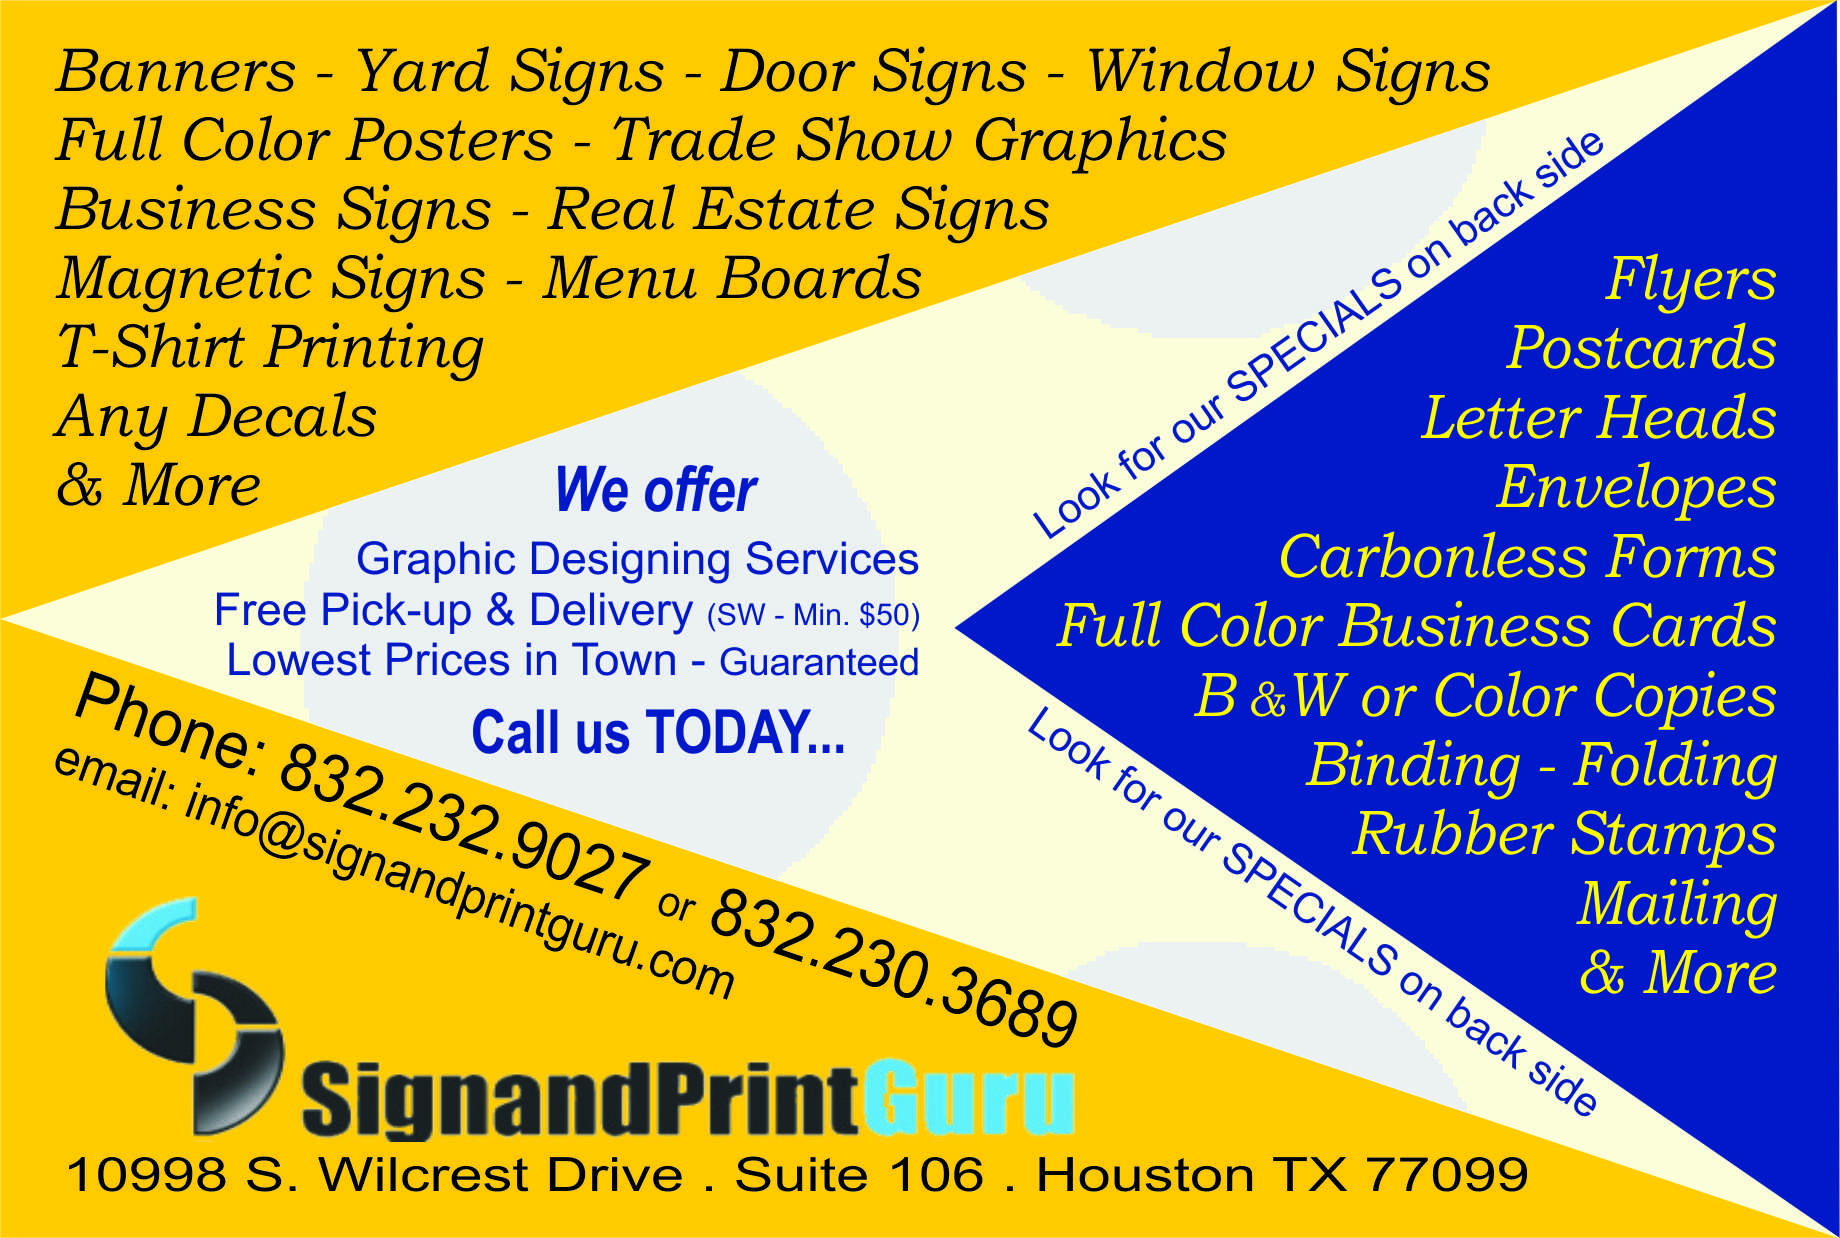 Sign and print guru 10998 s wilcrest dr ste 106 houston tx 77099 sign and print guru 10998 s wilcrest dr ste 106 houston tx 77099 yp reheart Image collections